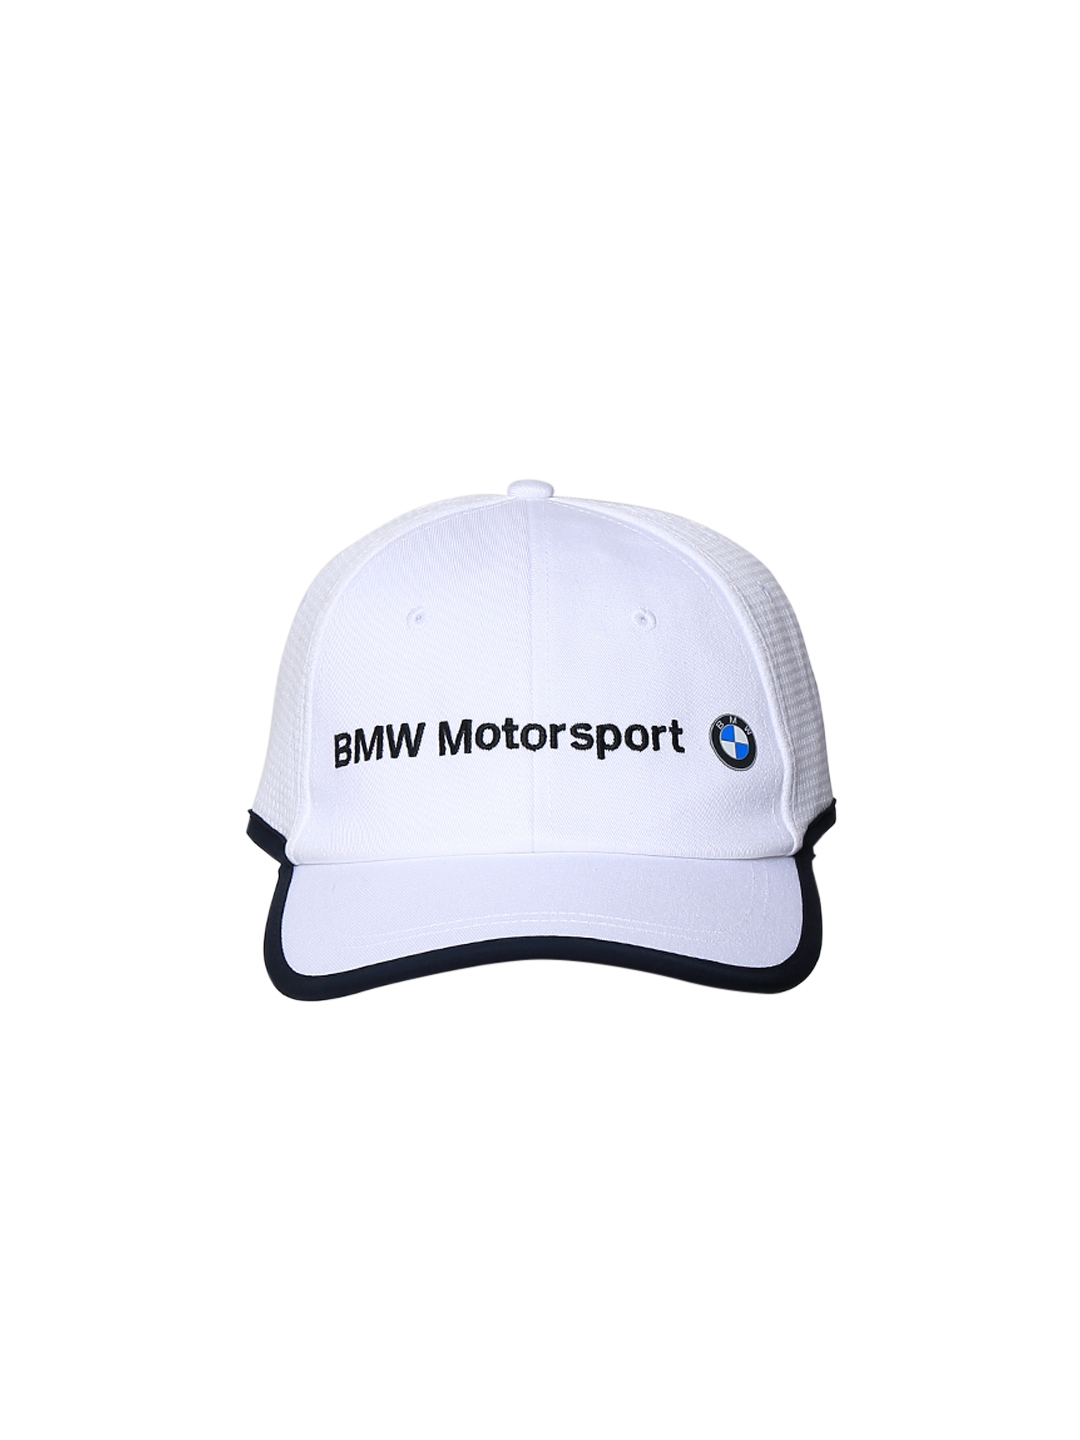 free shipping 70092 abf42 Buy Puma Unisex White BMW Motorsport Baseball Cap - Caps for Unisex 2197359    Myntra